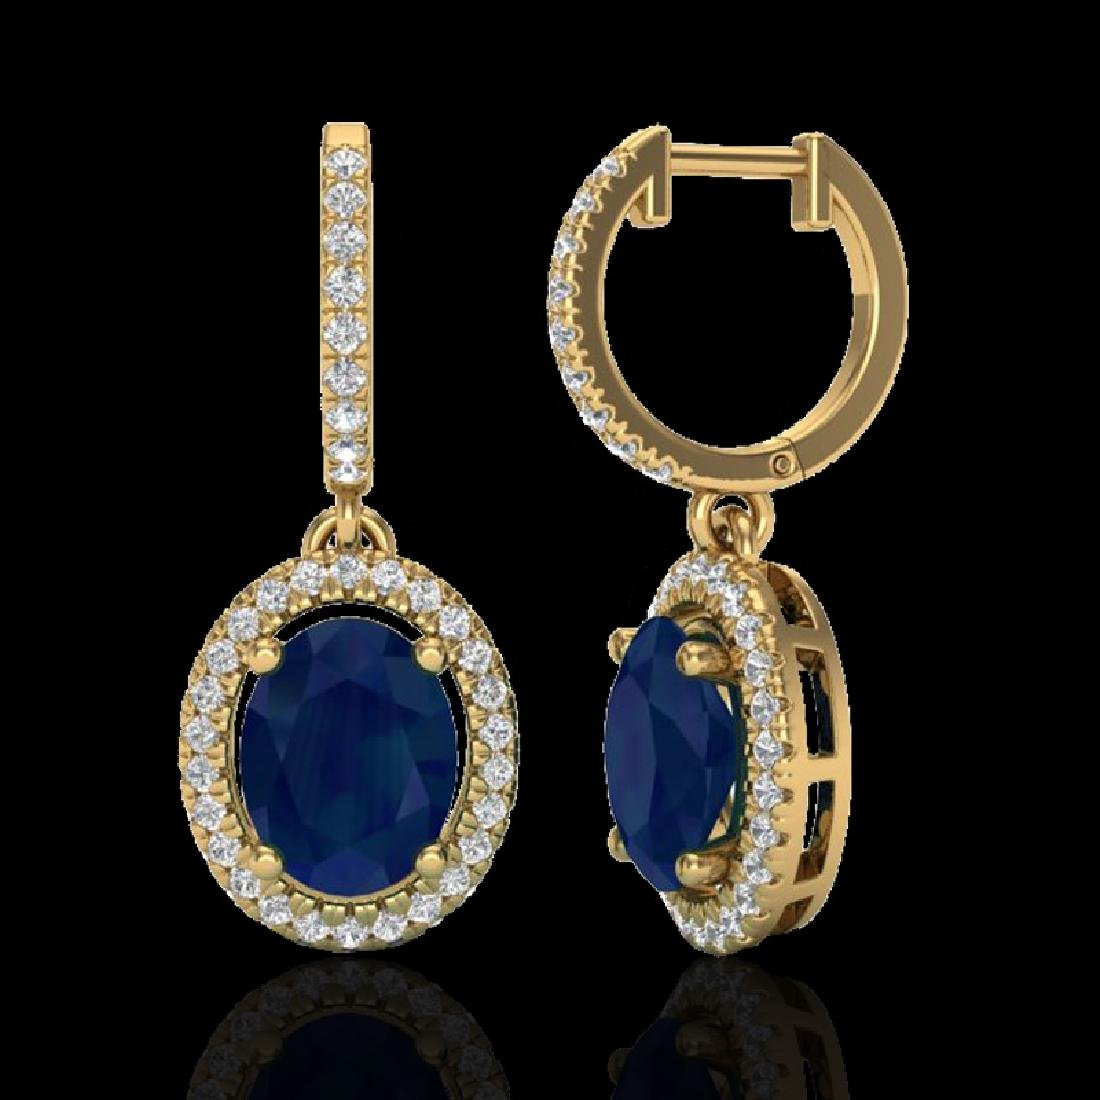 4.25 CTW Sapphire & Micro Pave VS/SI Diamond Earrings - 2